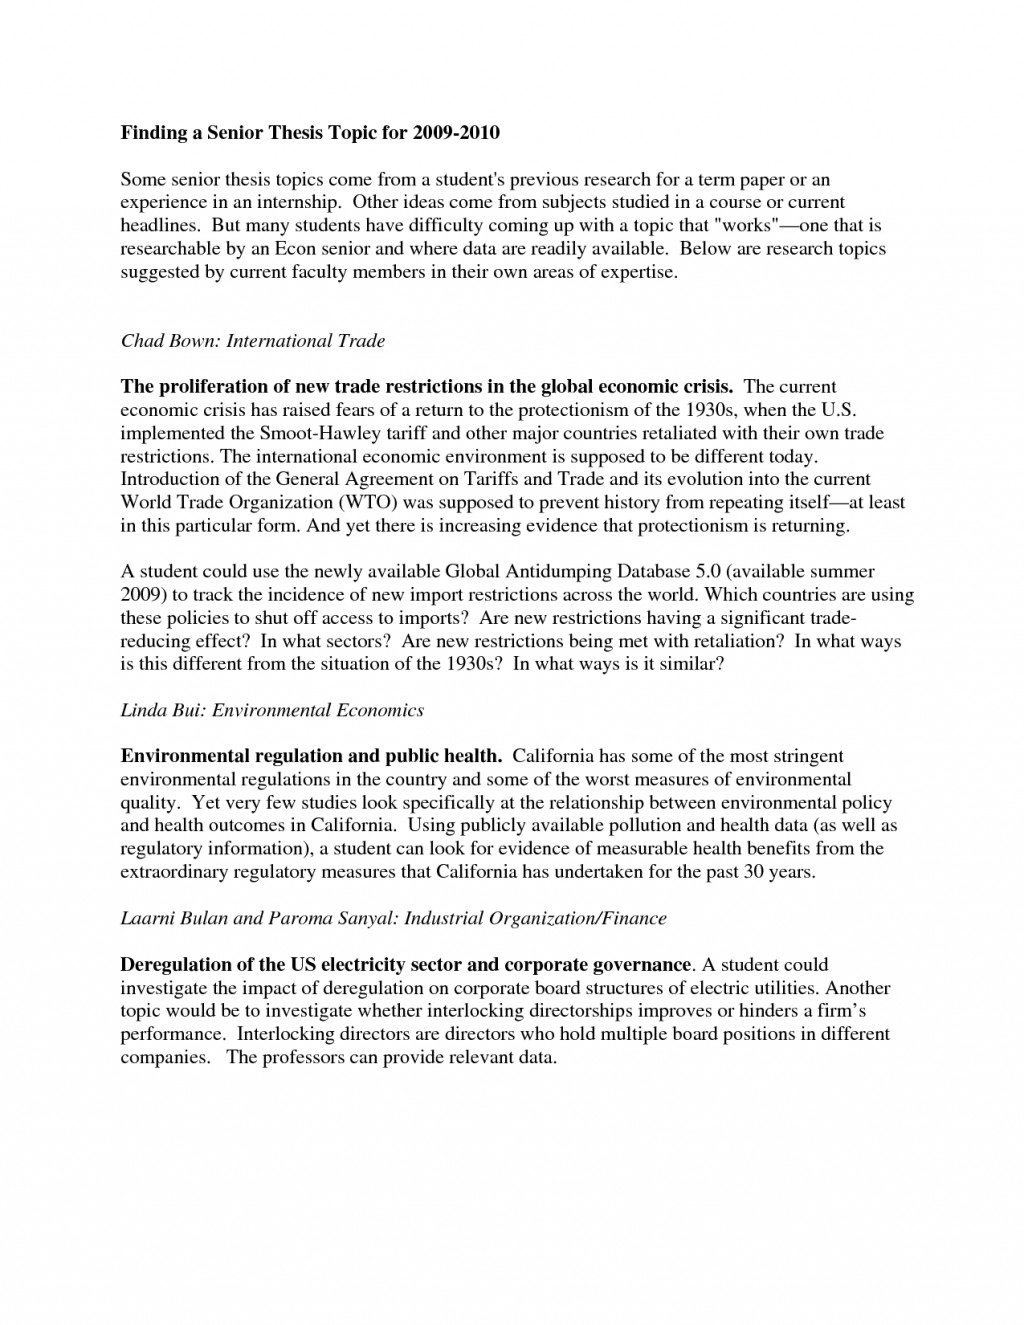 003 Musicarch Paper Topics Argumentative Essay For High School Swqij Websrihr Pics Persuasive Examples L Incredible Music Research Large